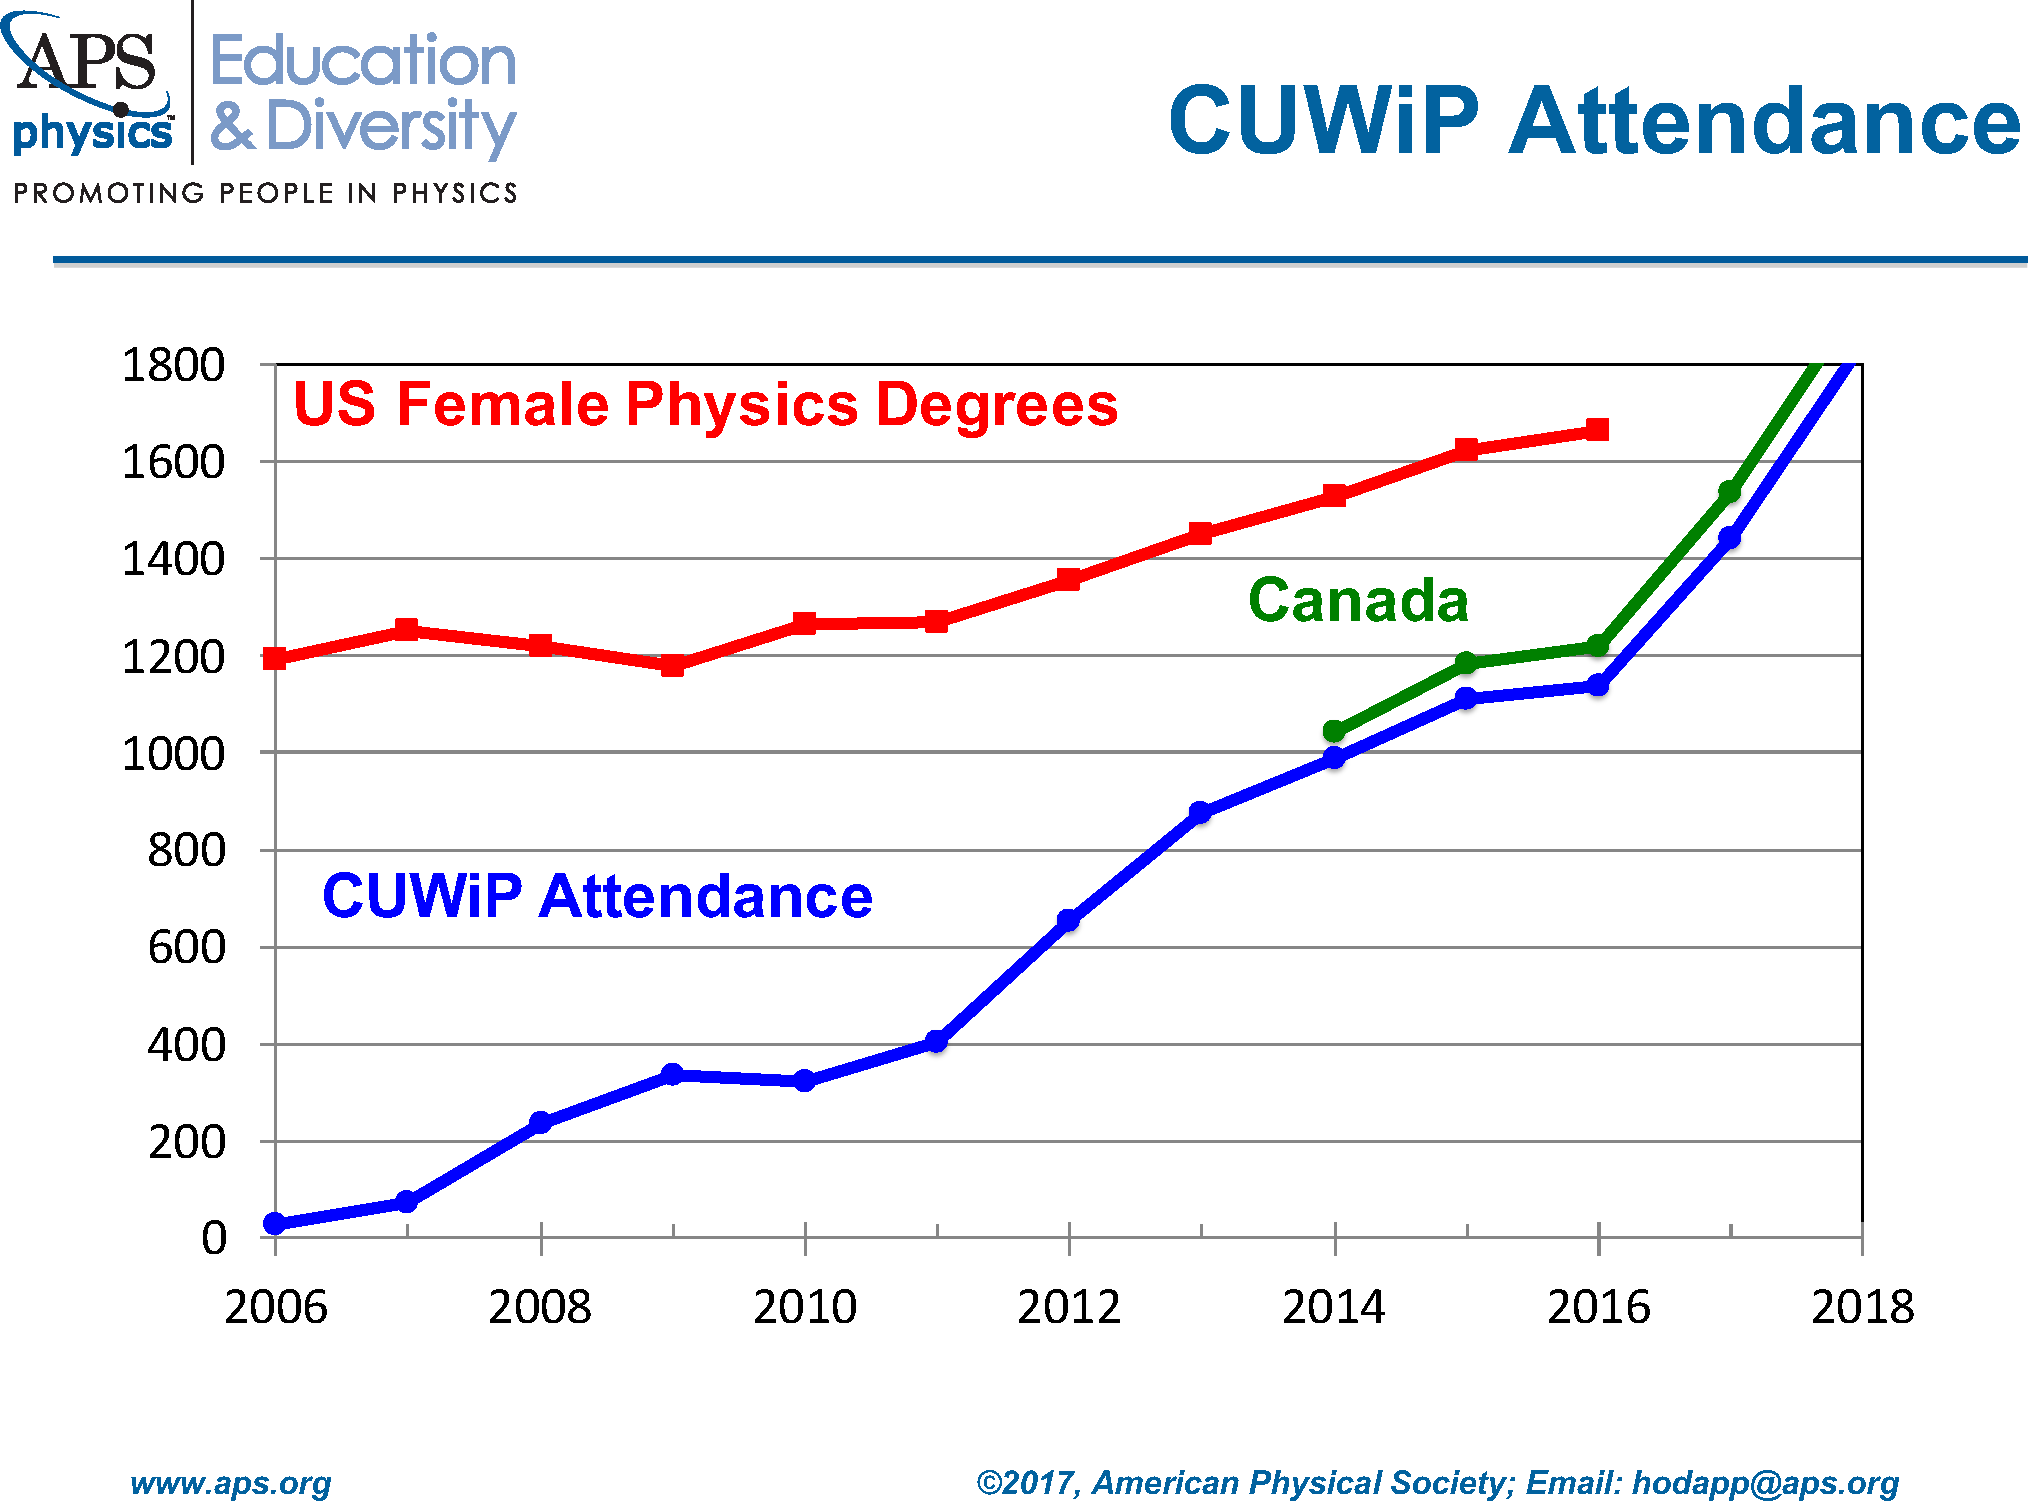 CUWiP Attendance Over the Years